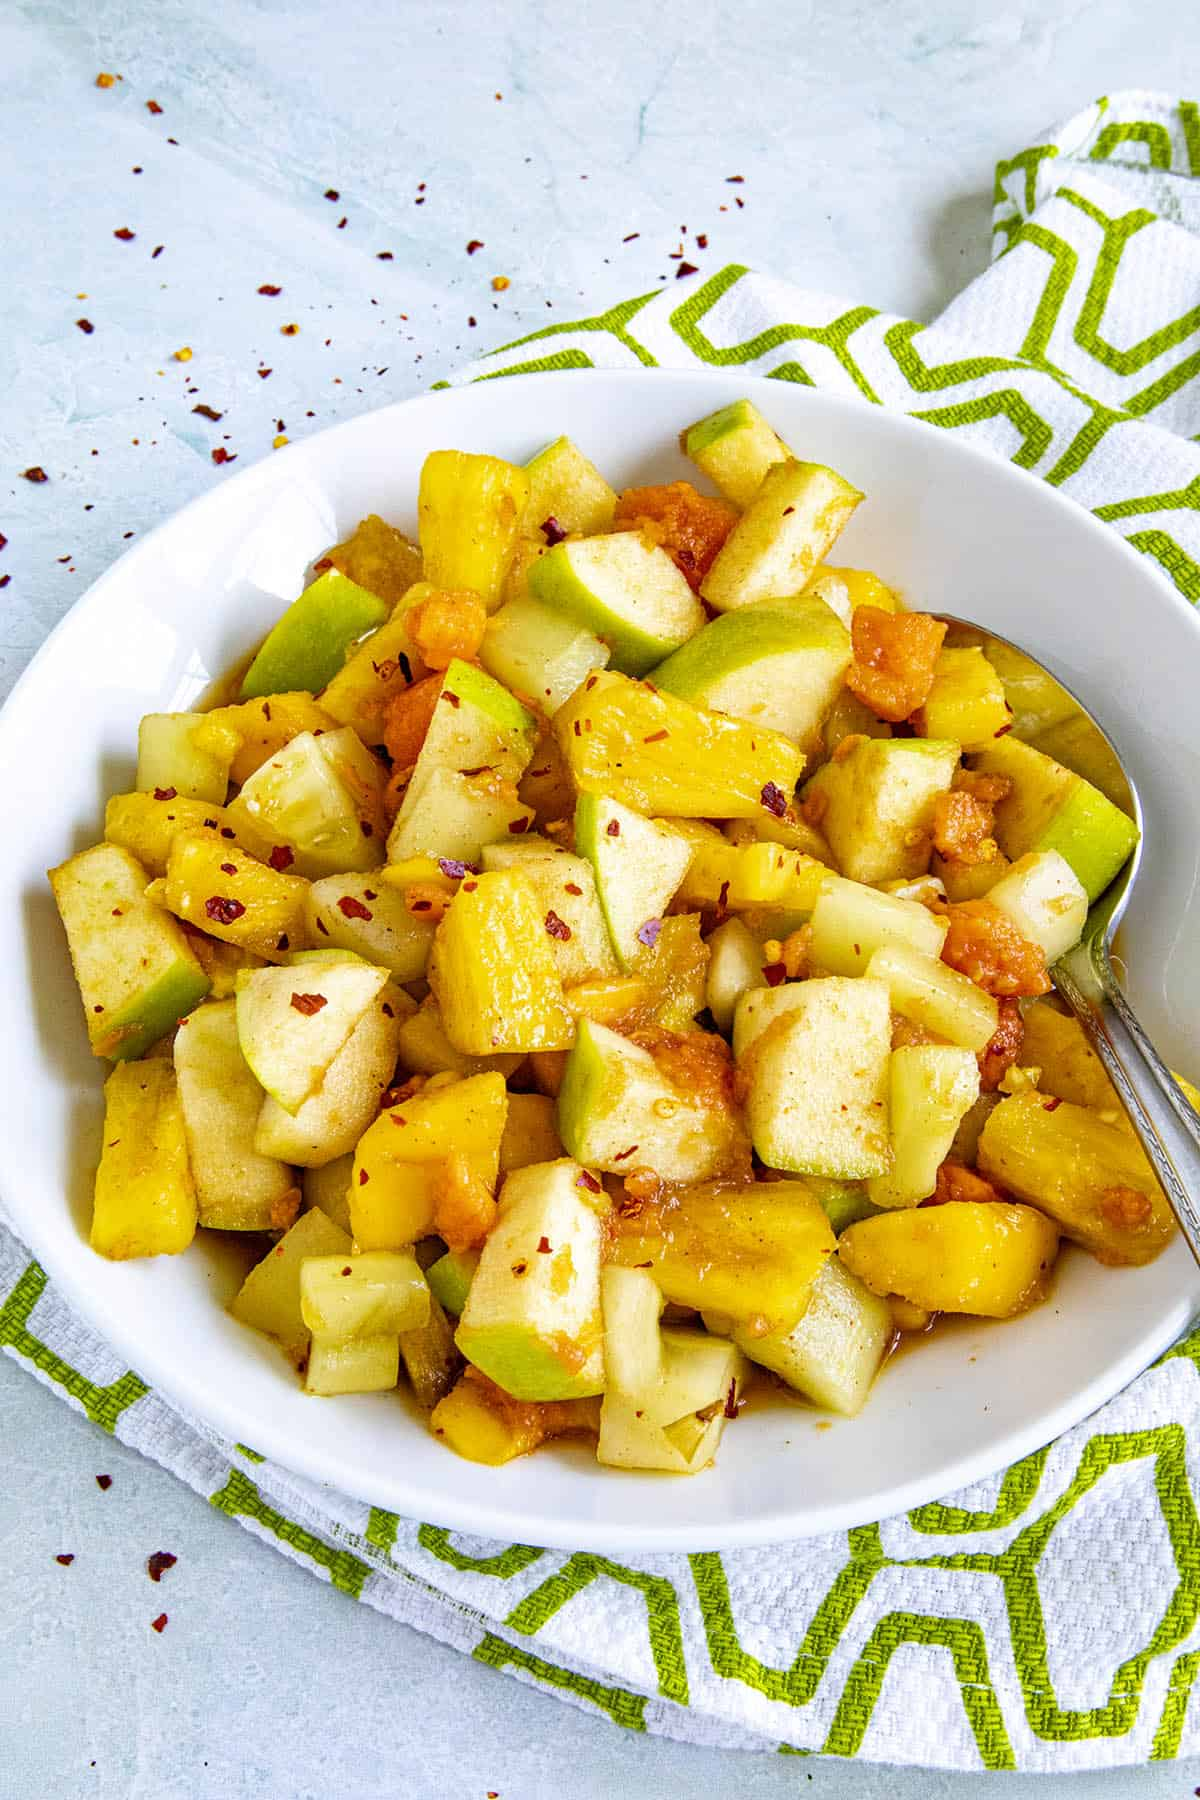 A spoonful of Rujak (Indonesian fruit salad)